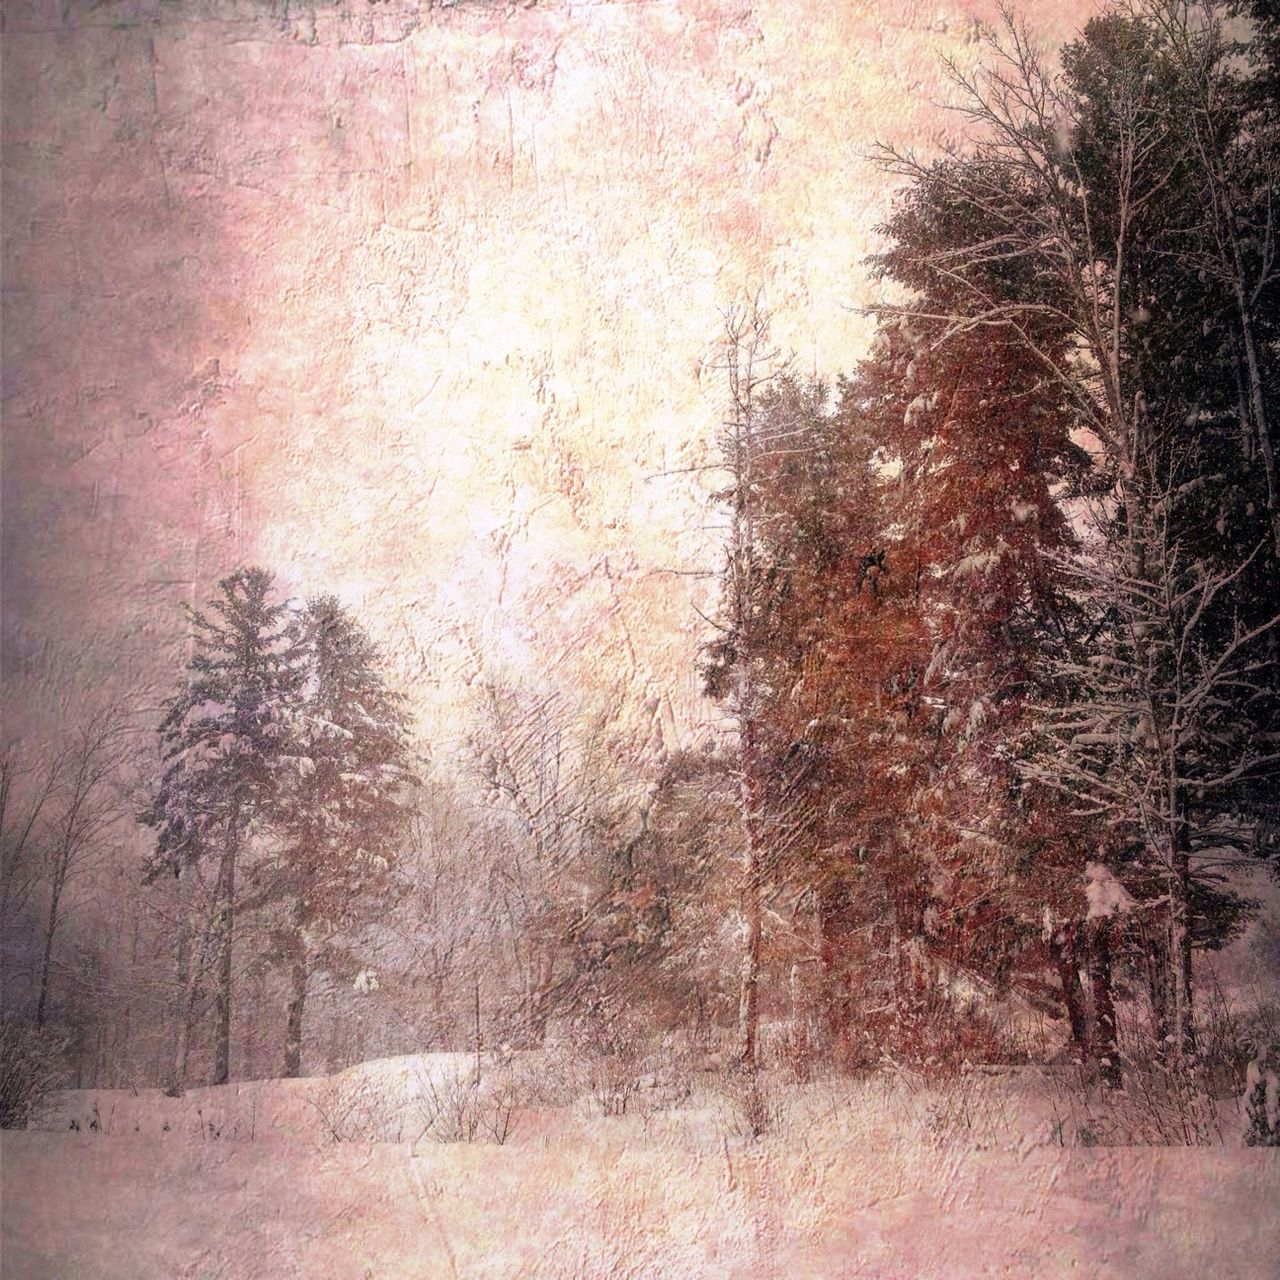 winter, snow, cold temperature, tree, no people, nature, backgrounds, outdoors, day